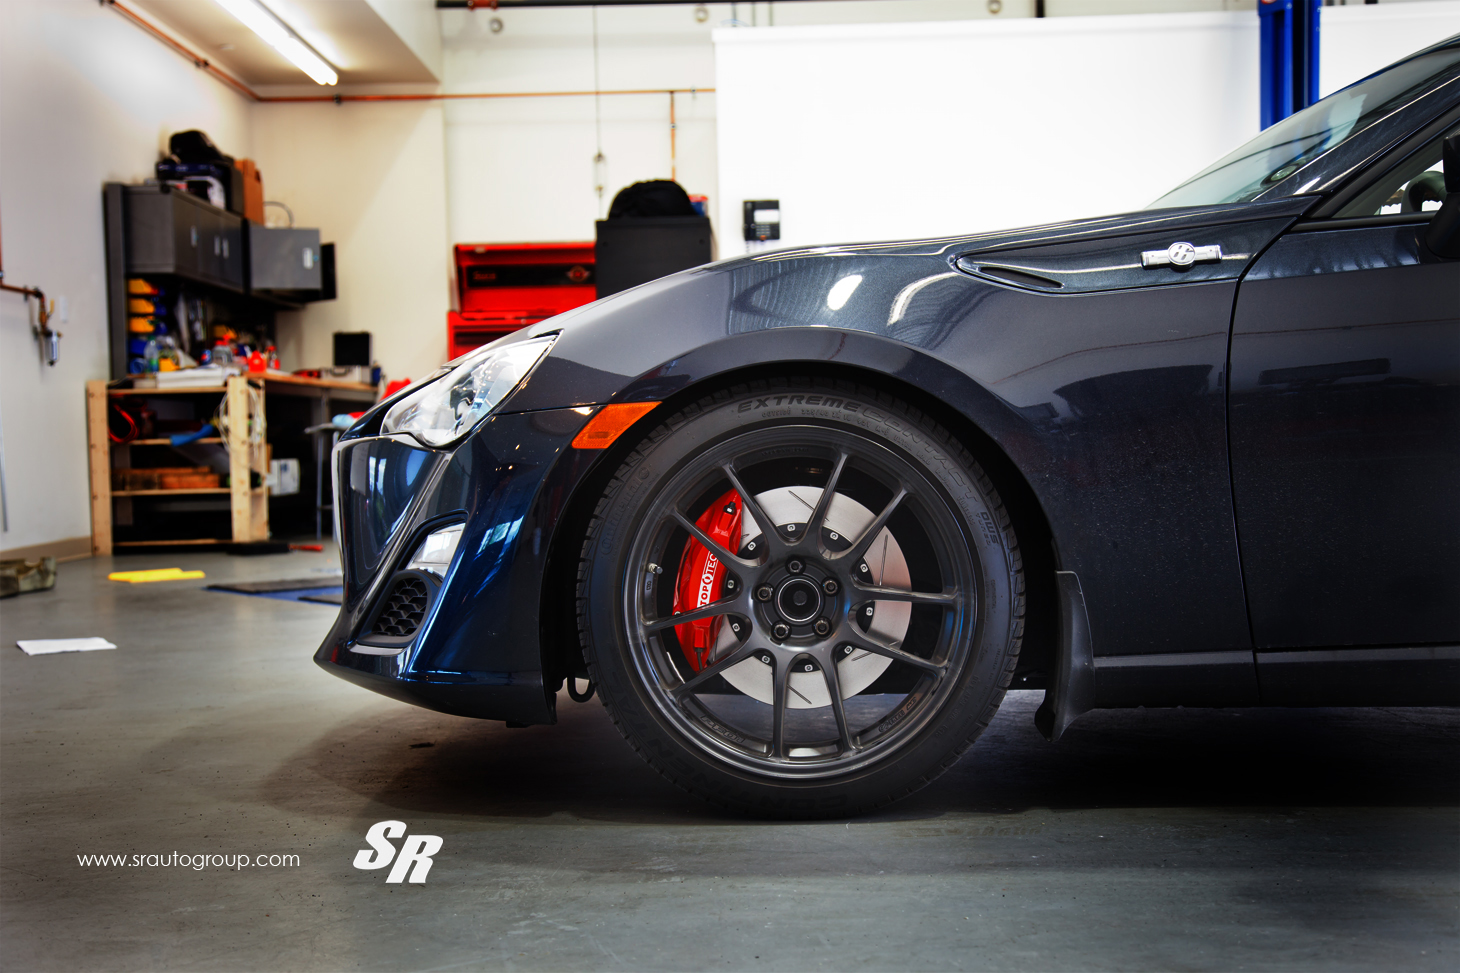 Photos besides Scion Fr S Gets Big Brakes Kit Installed By Sr Photo Gallery 60572 also Ford 5th Wheel Gooseneck Wiring Harness in addition 75 009 together with 90 Mustang 2 N 1 Engine. on bmw car wiring harness